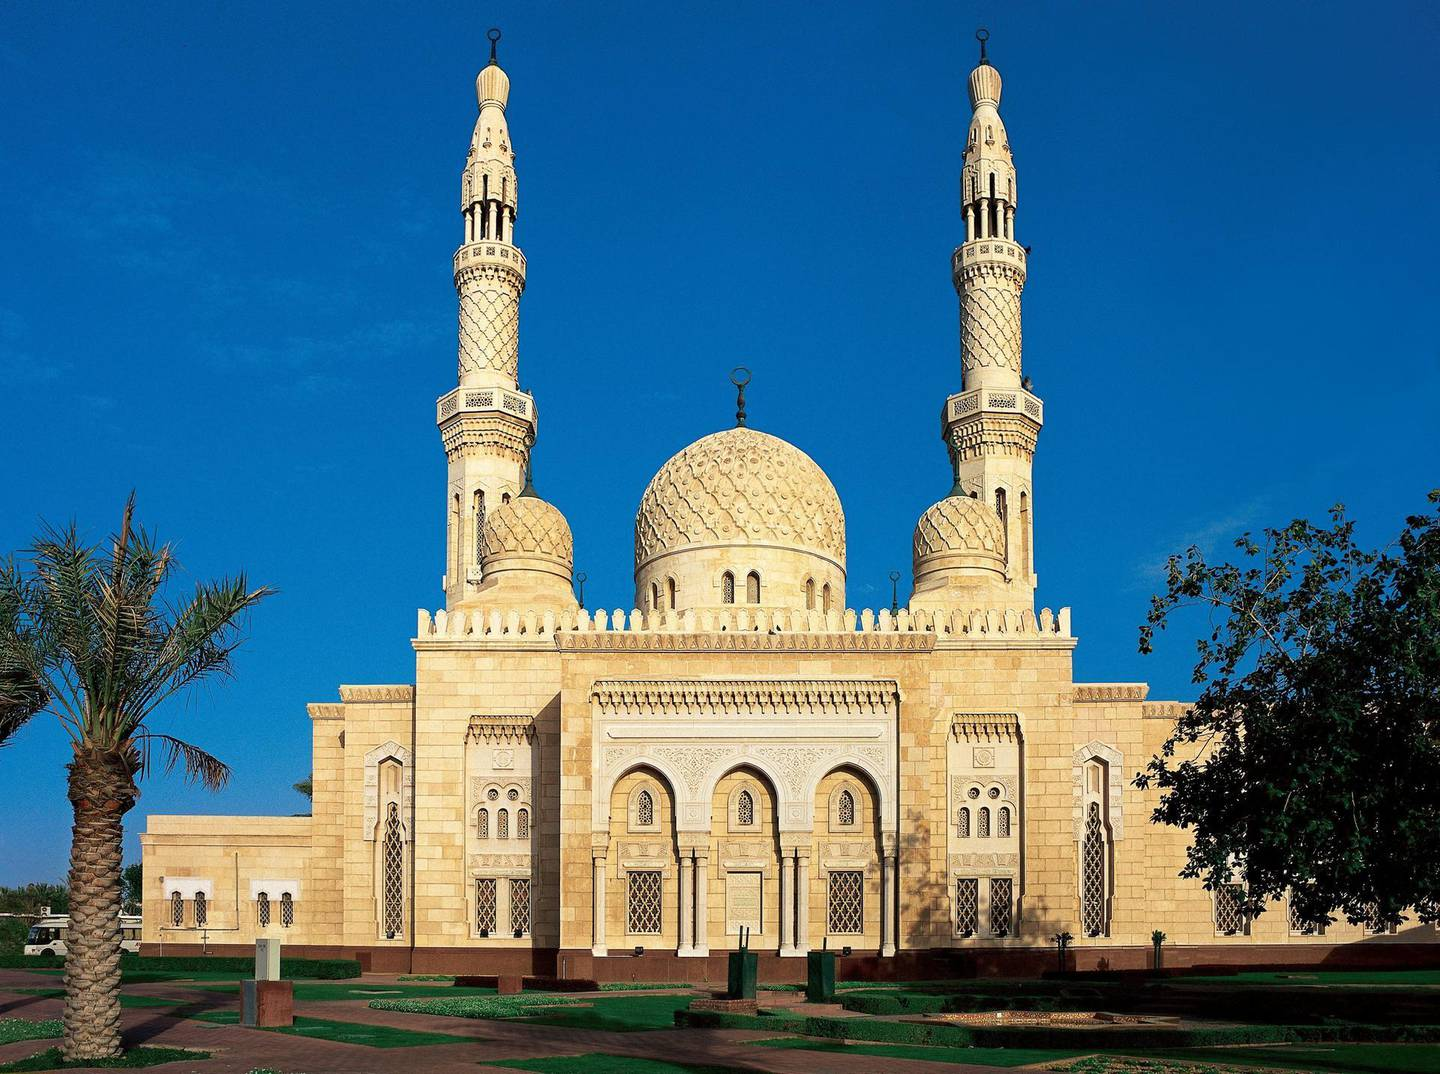 (GERMANY OUT) DUBAI: JUMEIRAH MOSQUE. The Jumeirah Mosque in Dubai, United Arab Emirates. Willy's Pictures - ullstein bild (Photo by Willy's Pictures/ullstein bild via Getty Images)